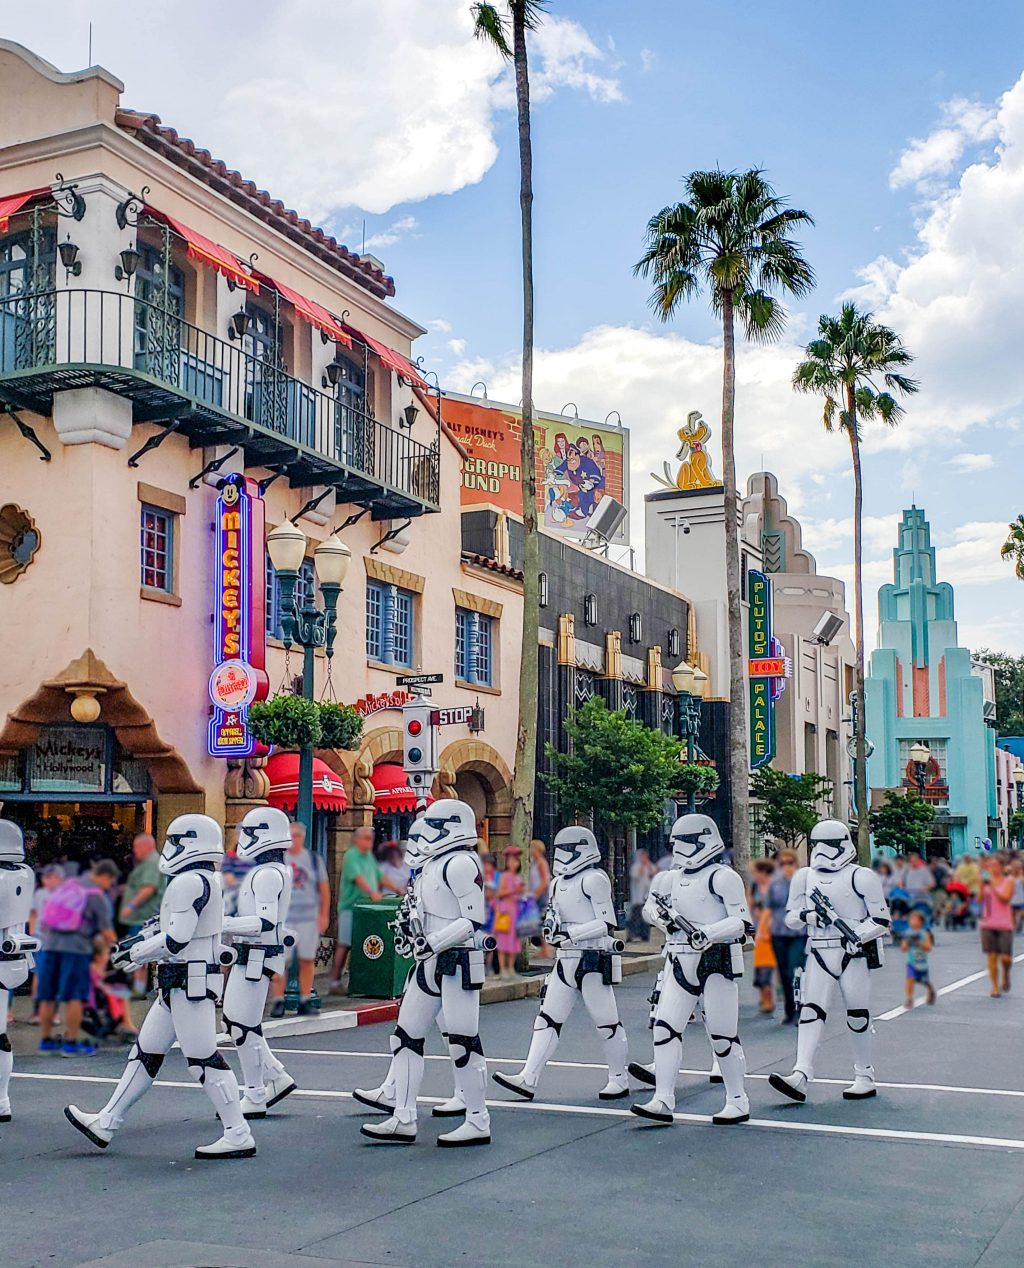 Storm Troopers march down Hollywood Boulevard in Disney's Hollywood Studios